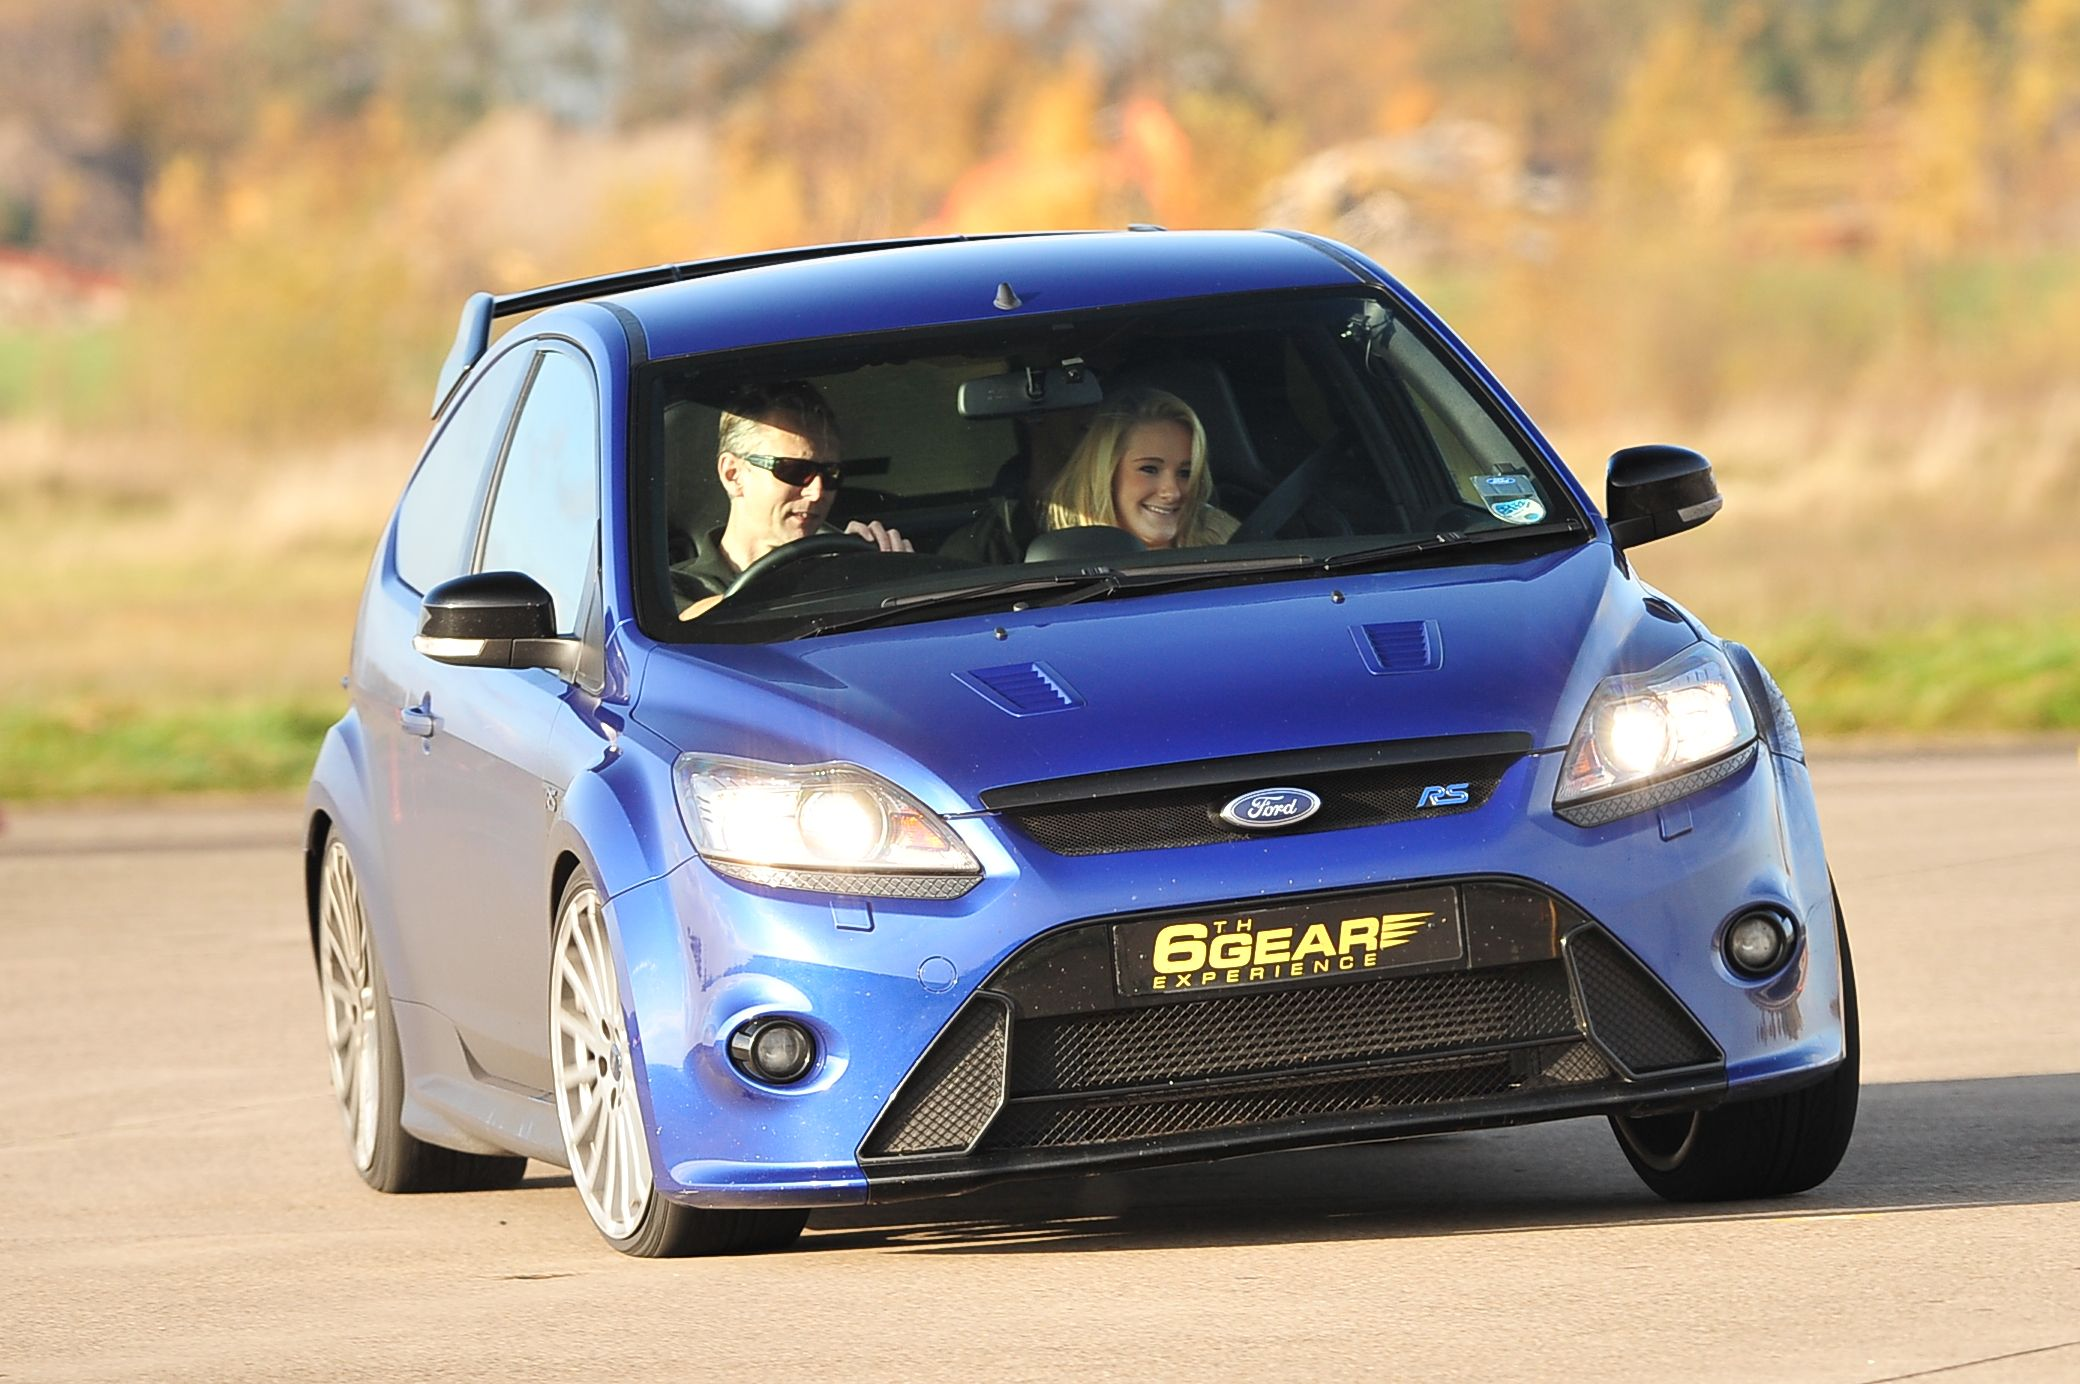 Ford Focus Rs Driving Experience From 6th Gear